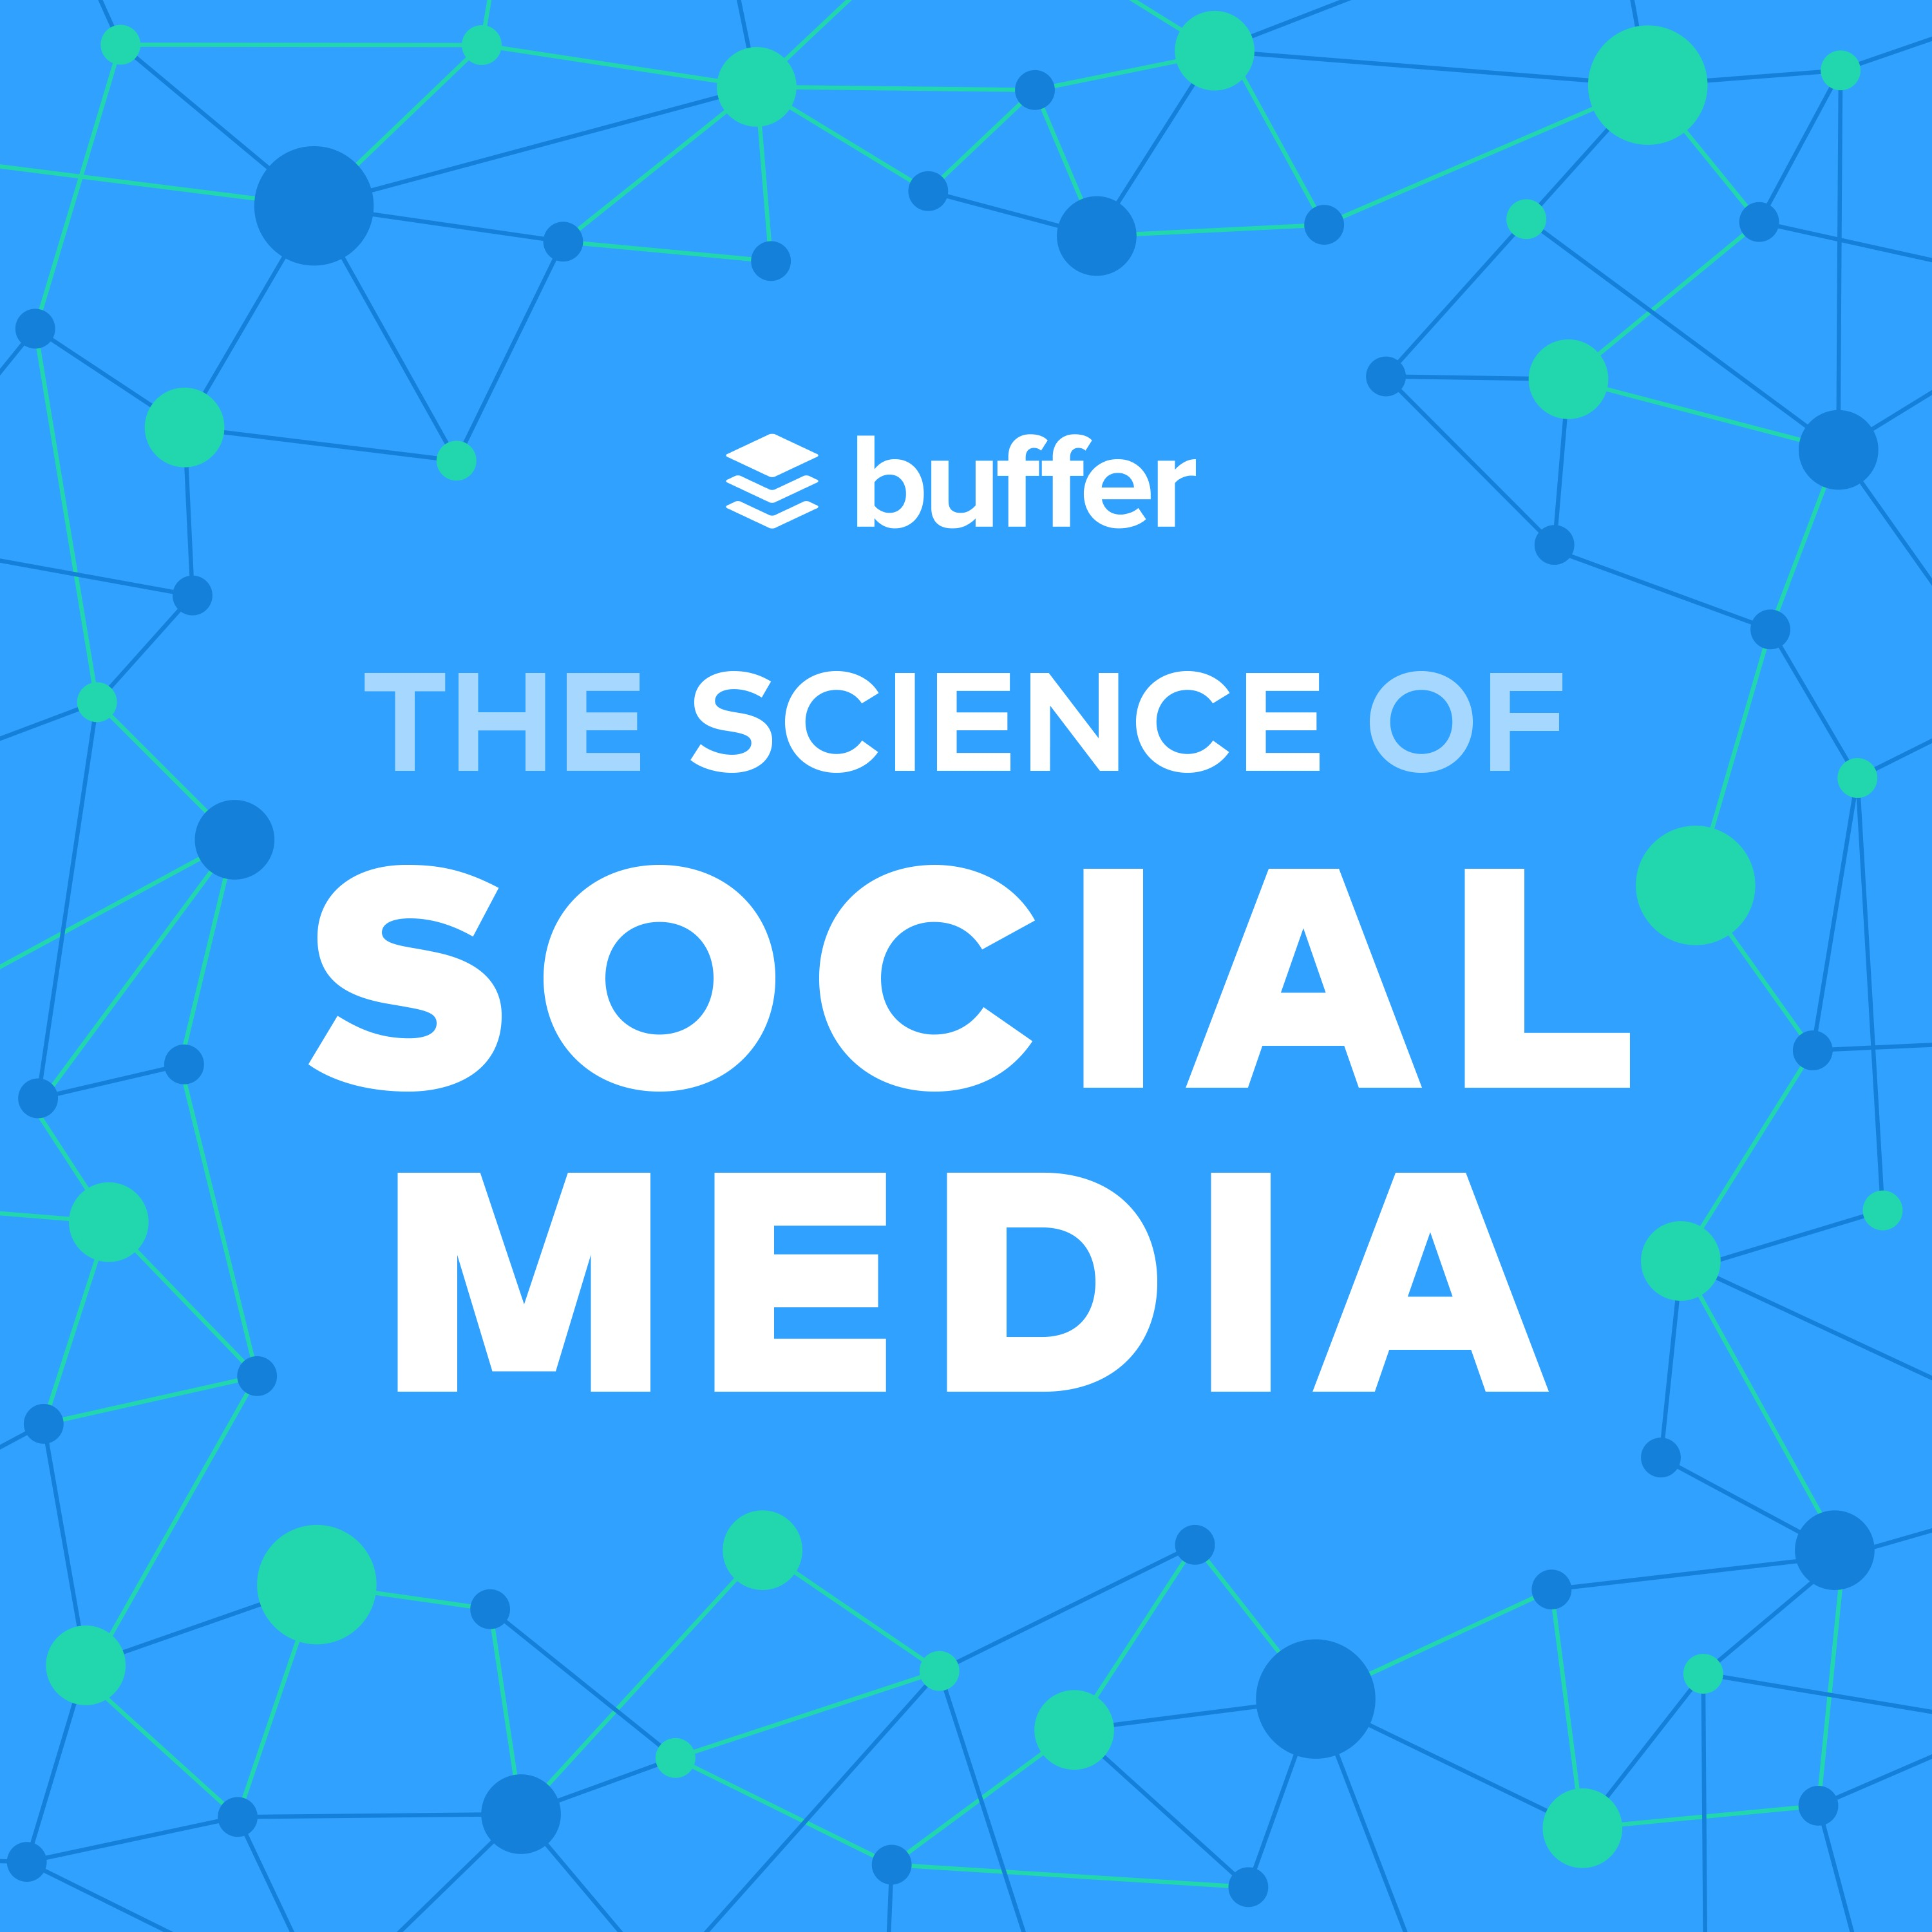 The 7 Important Skills You Need to Be a Successful Social Media Marketer